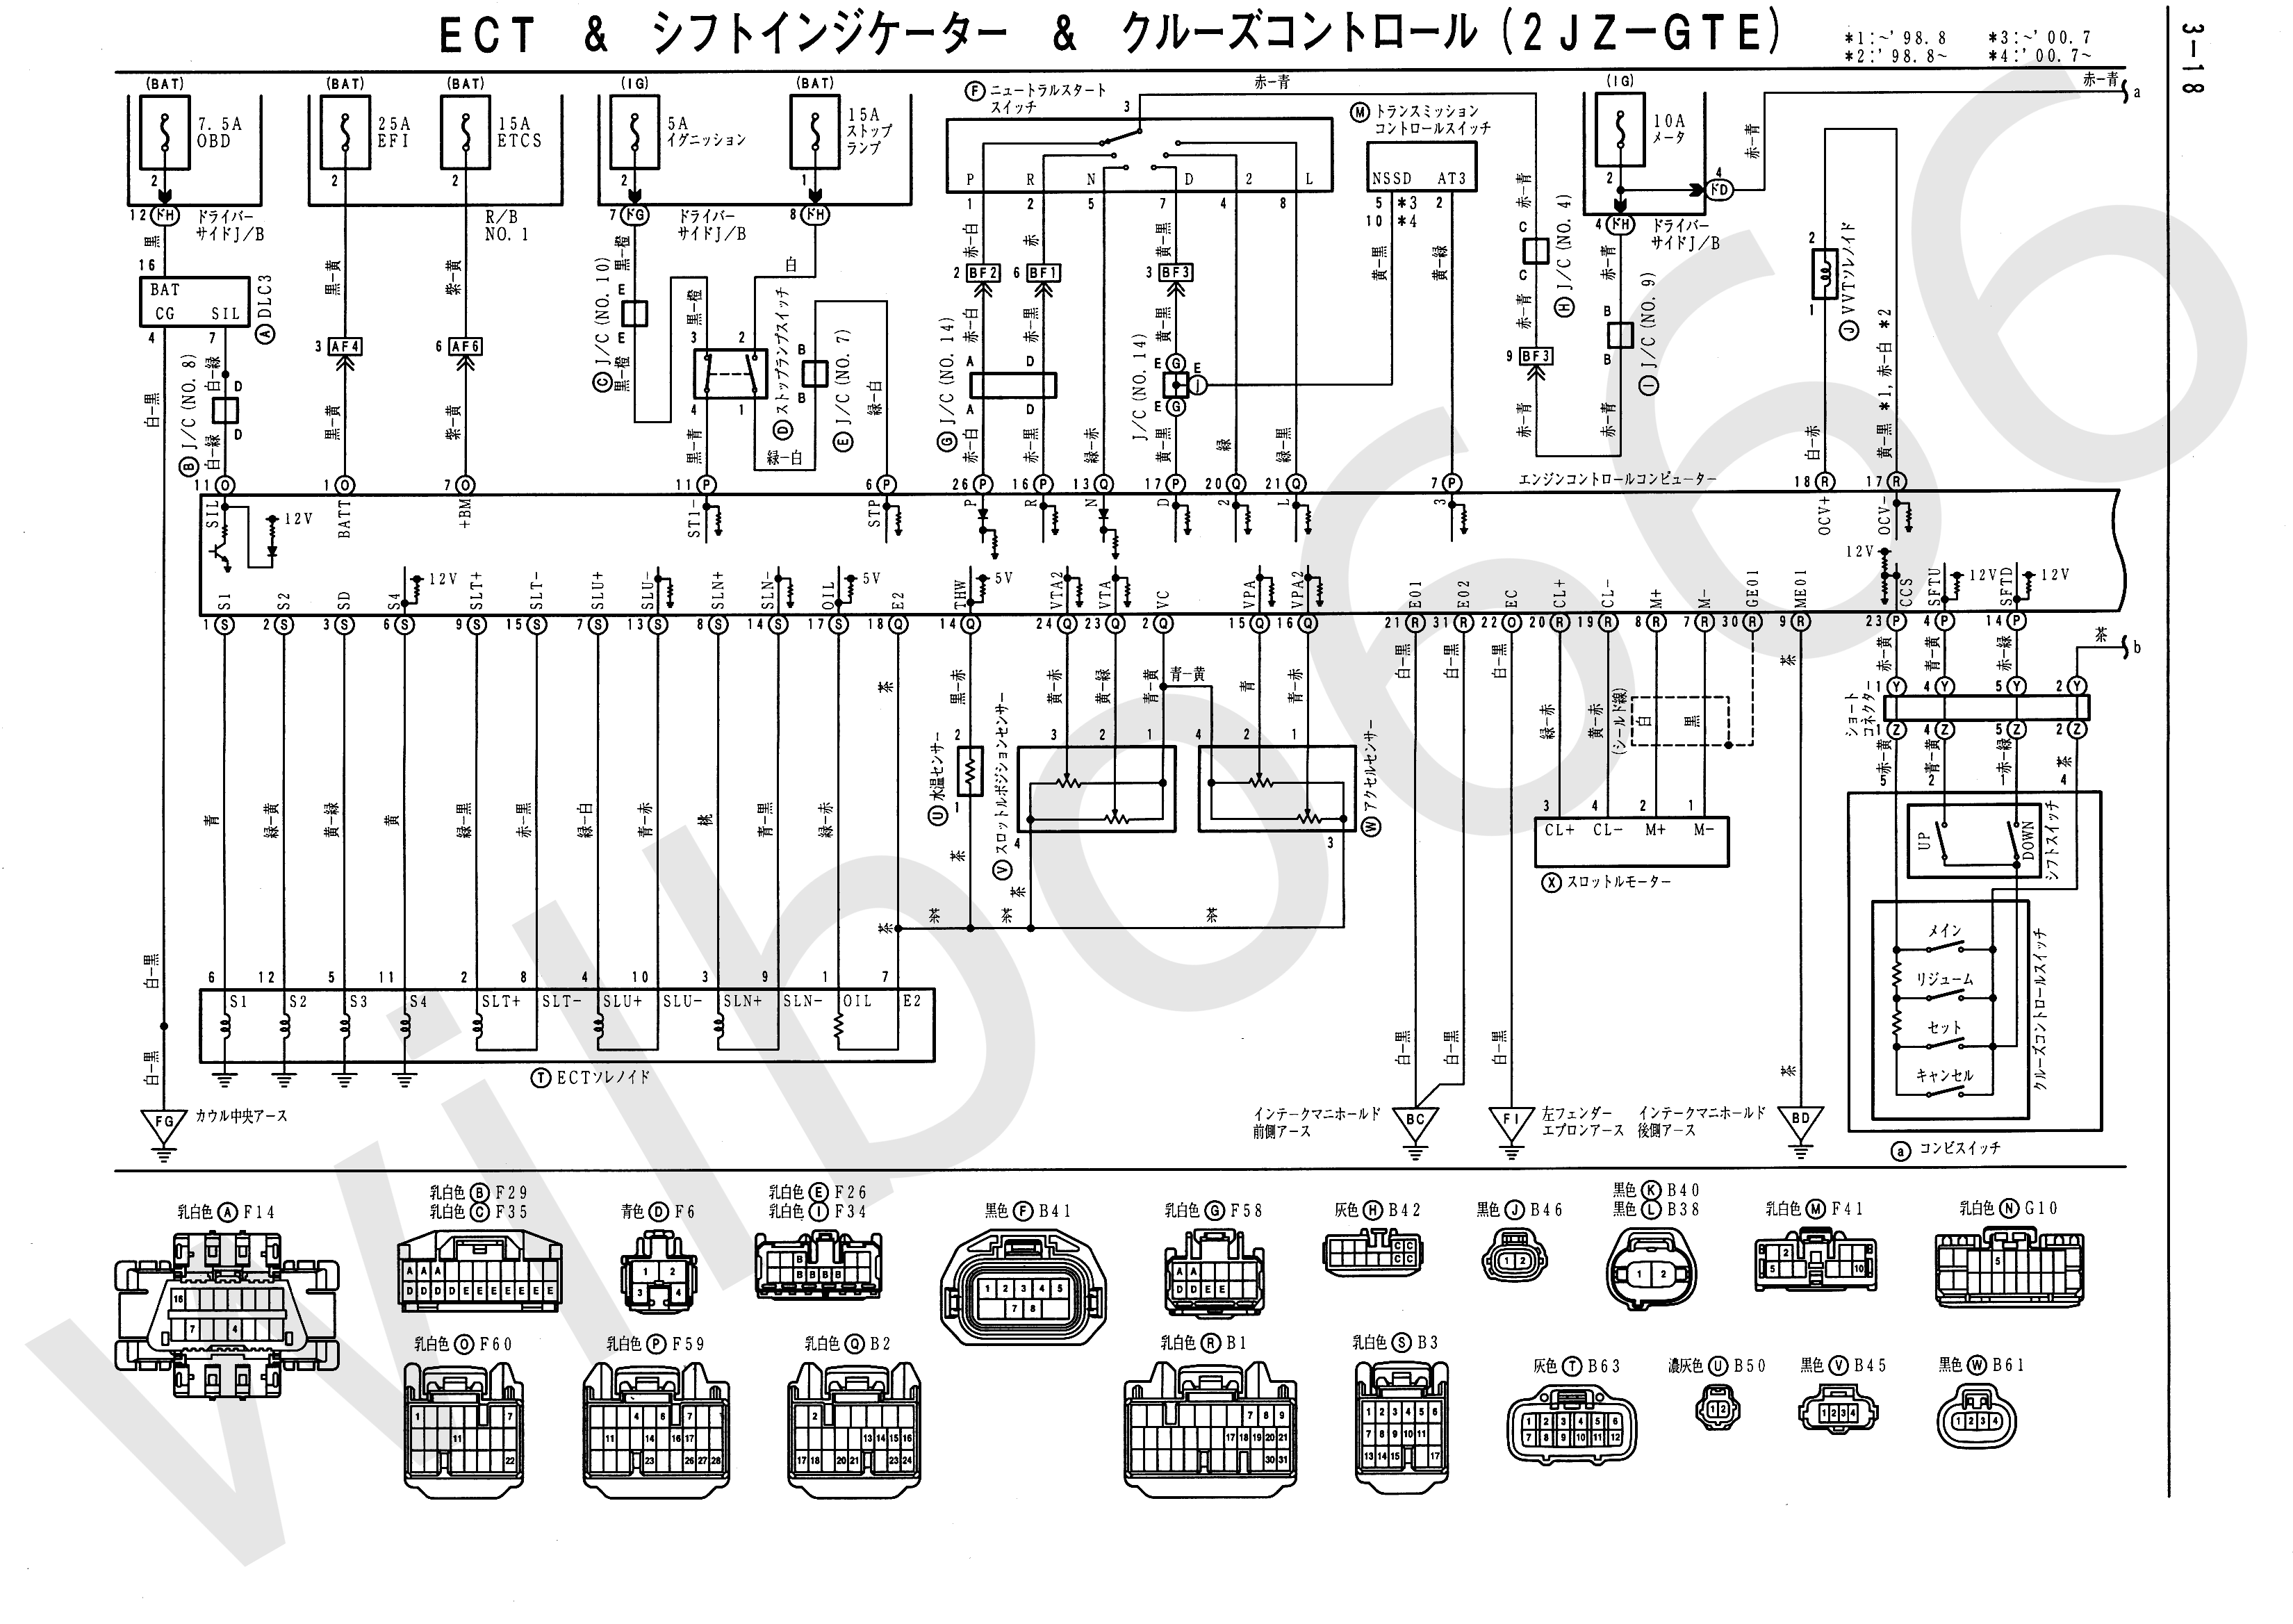 JZS161 Electrical Wiring Diagram 6748505 3 18 wilbo666 2jz gte vvti jzs161 aristo engine wiring 2jz wiring harness at honlapkeszites.co